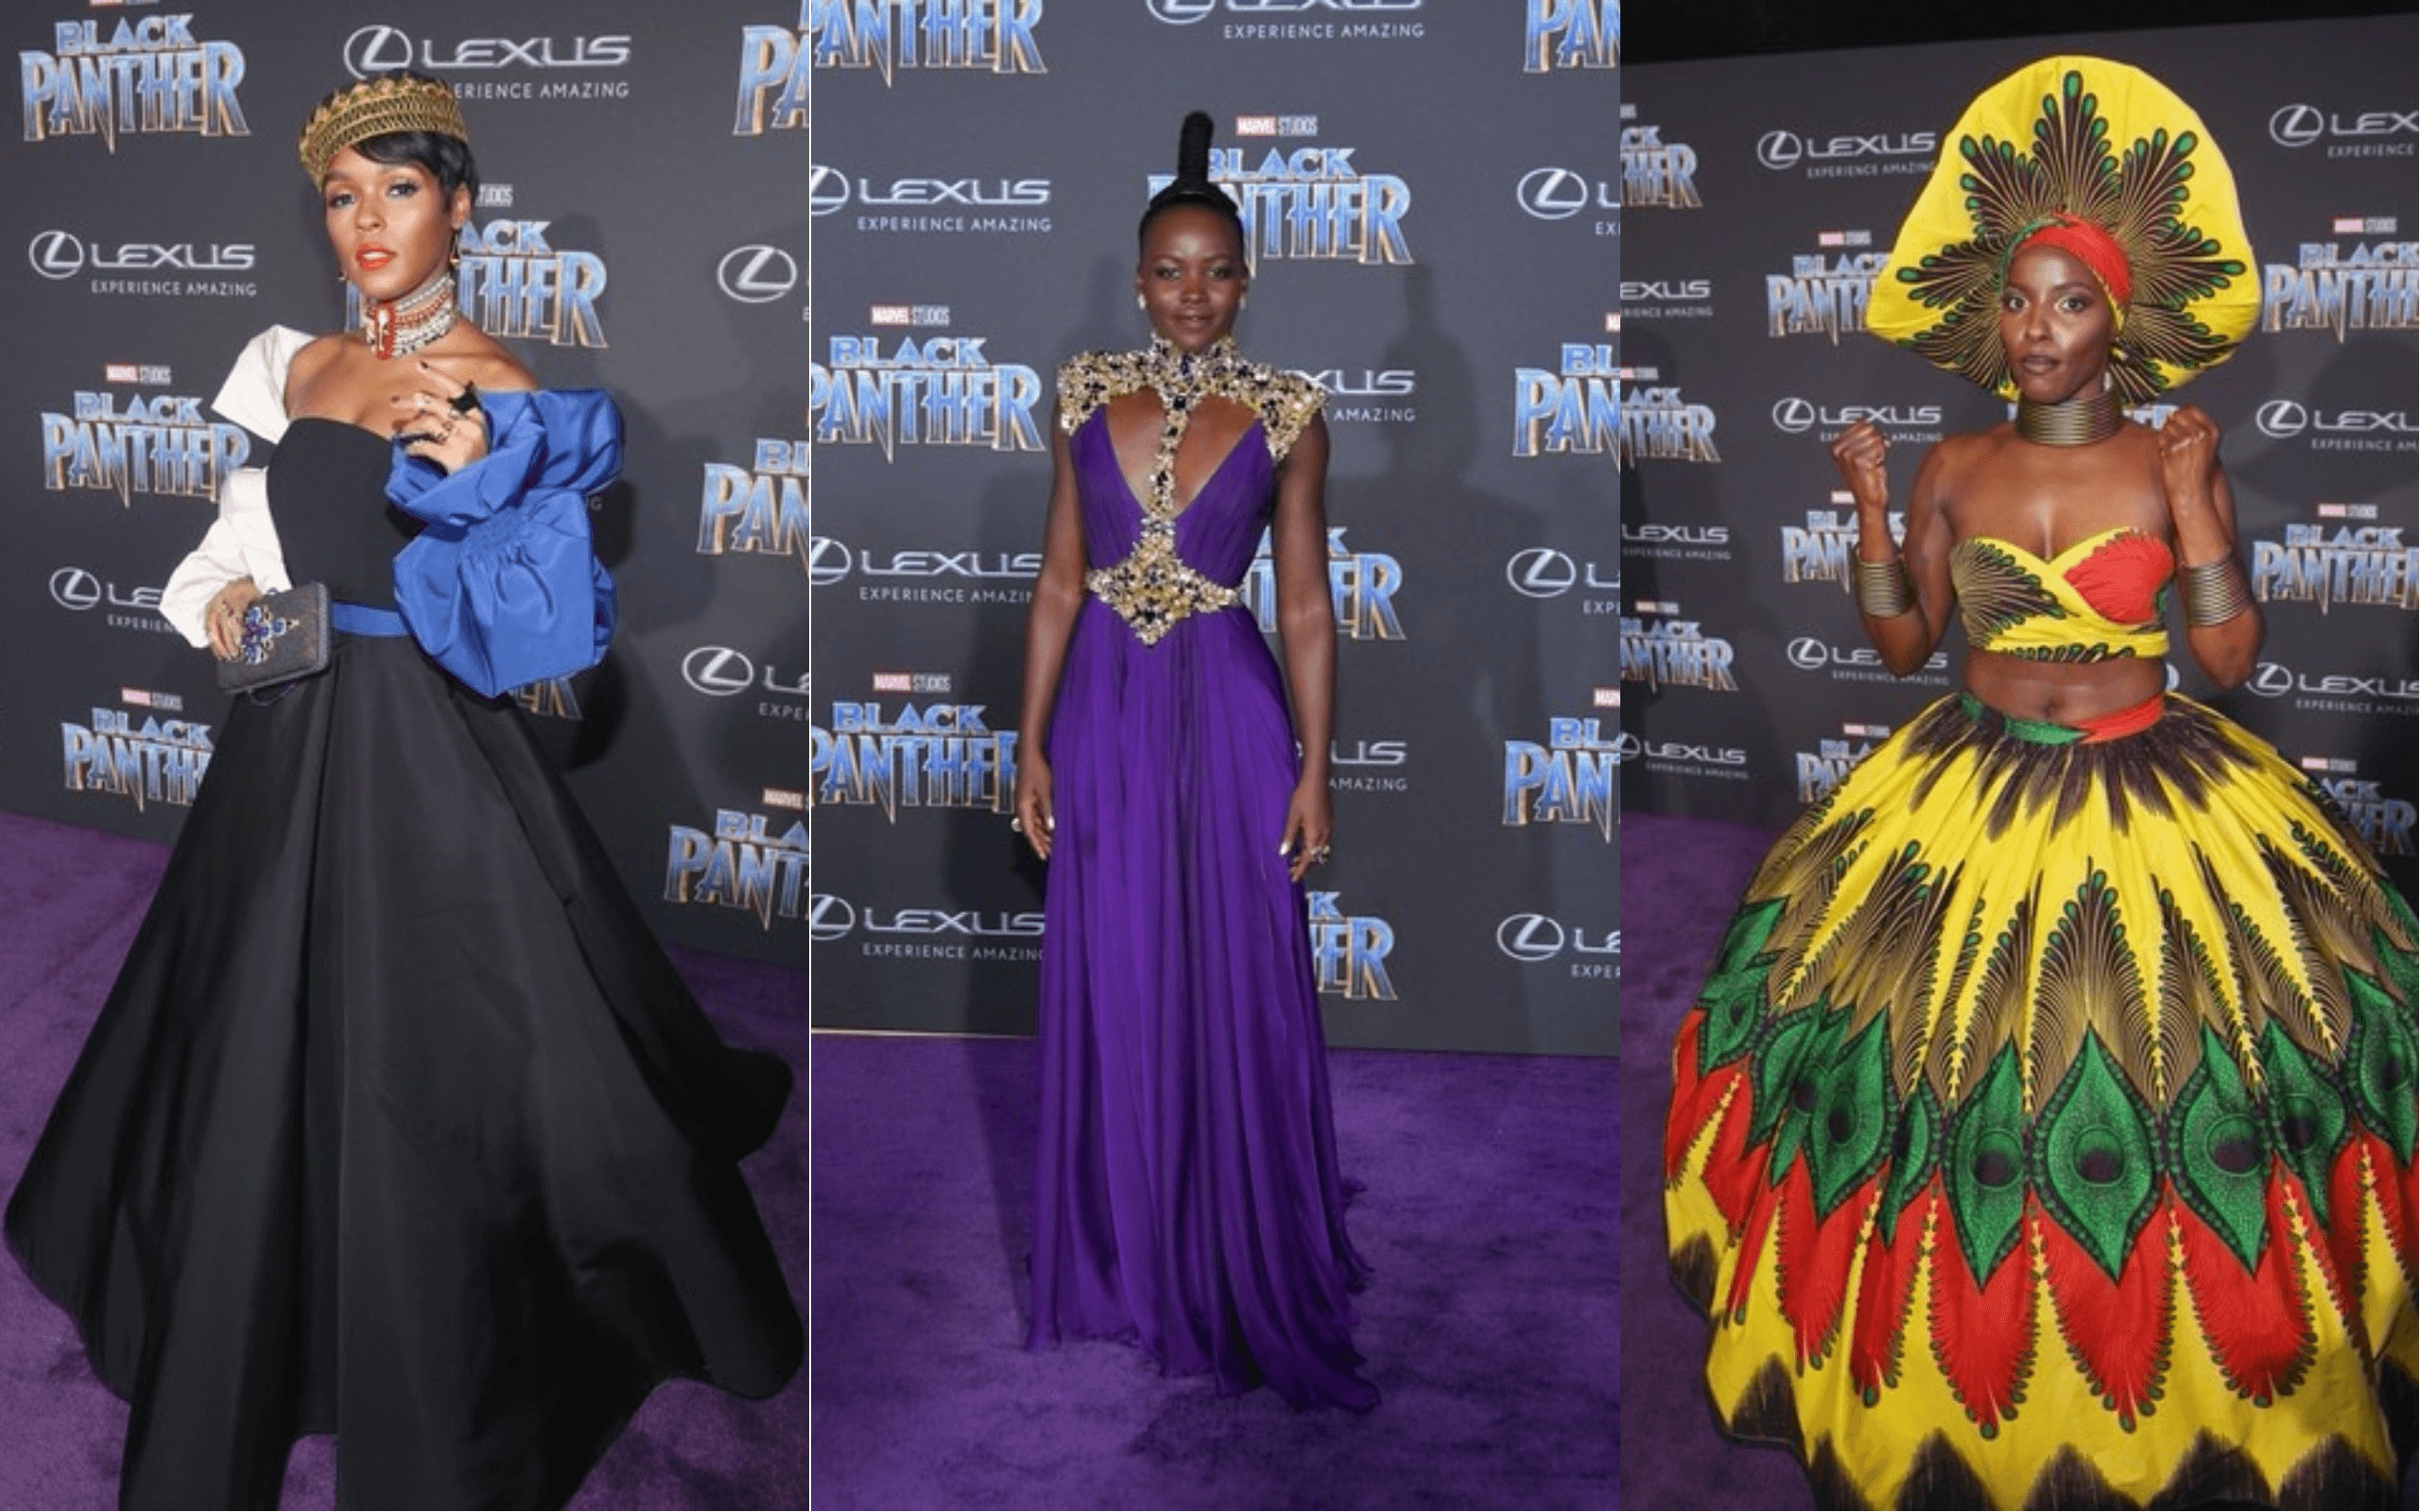 The Black Panther Premiere Red Carpet Was Dripping In